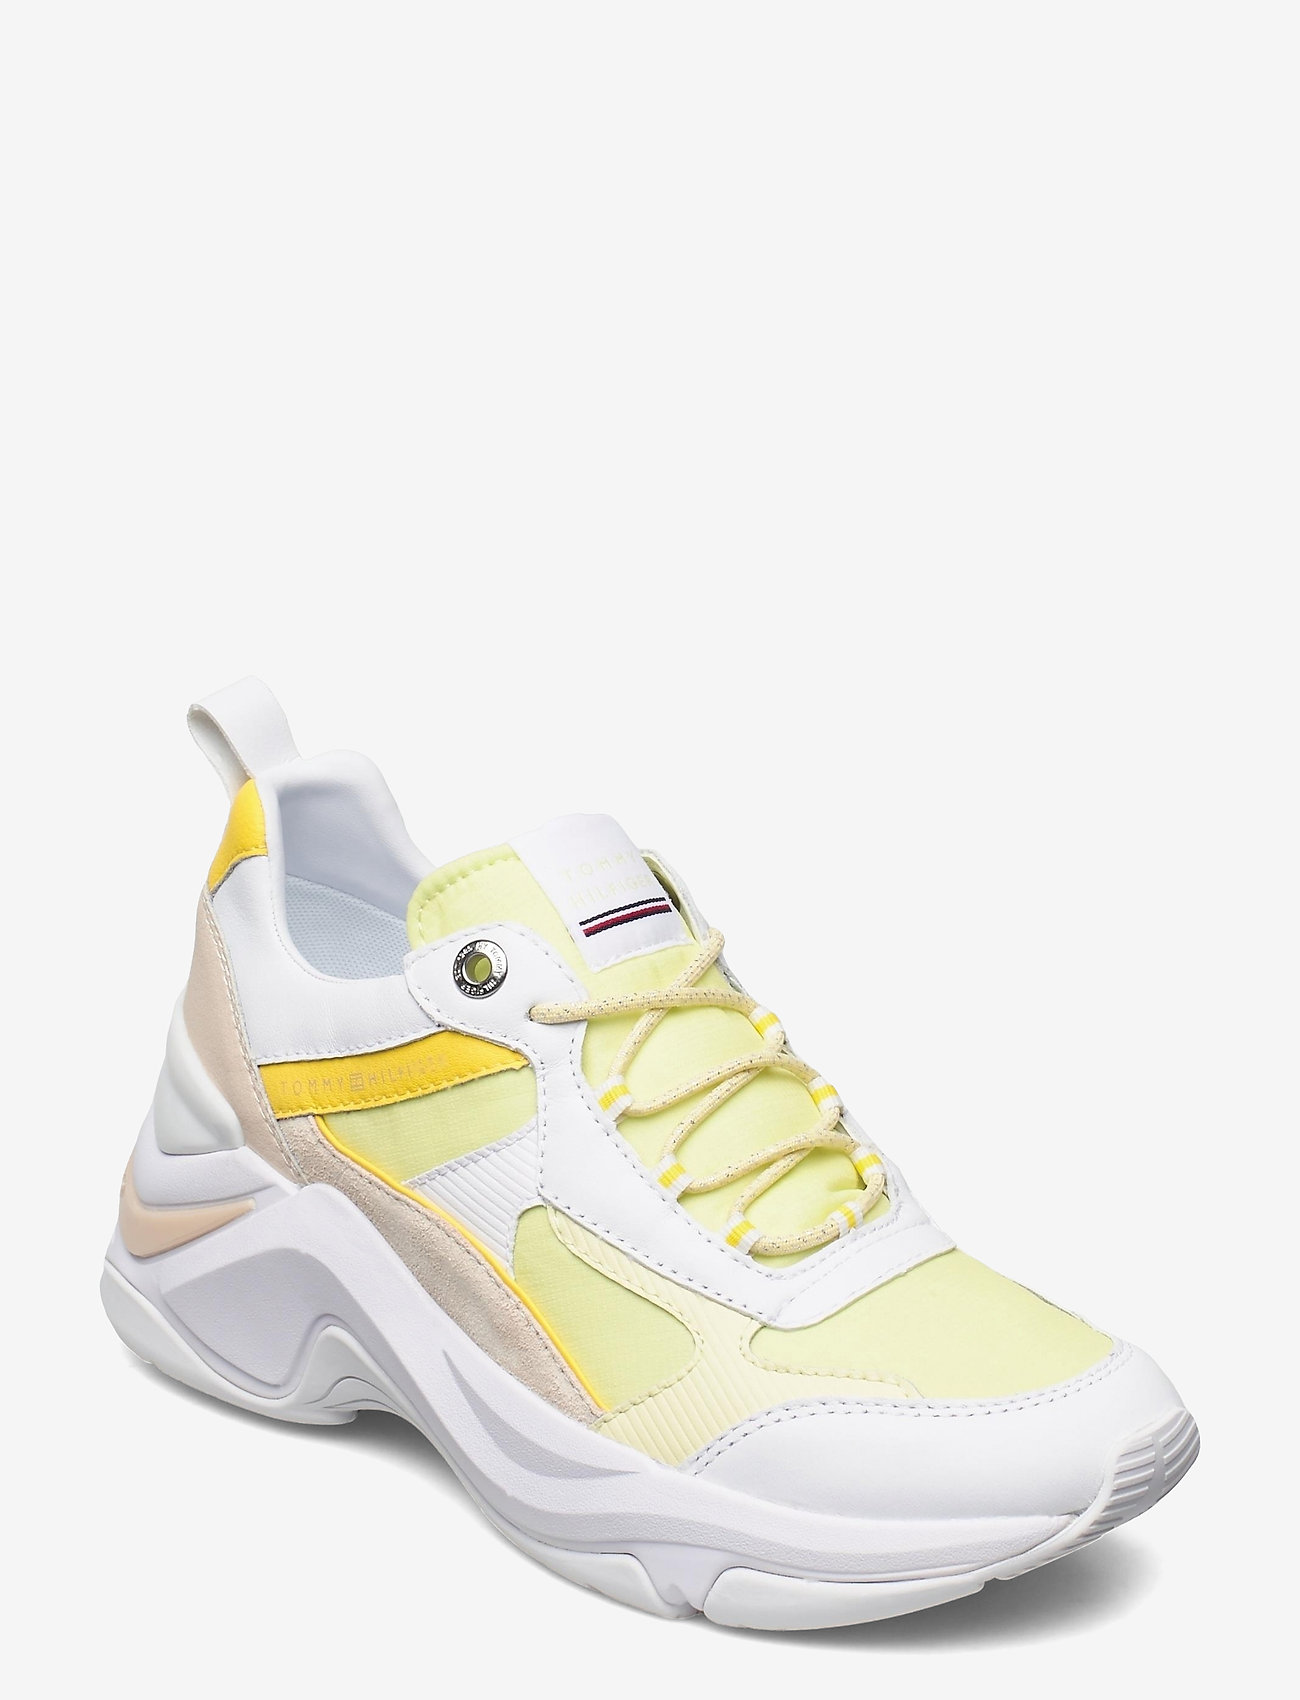 Tommy Hilfiger - FASHION WEDGE SNEAKER - chunky sneakers - frosted lemon - 0